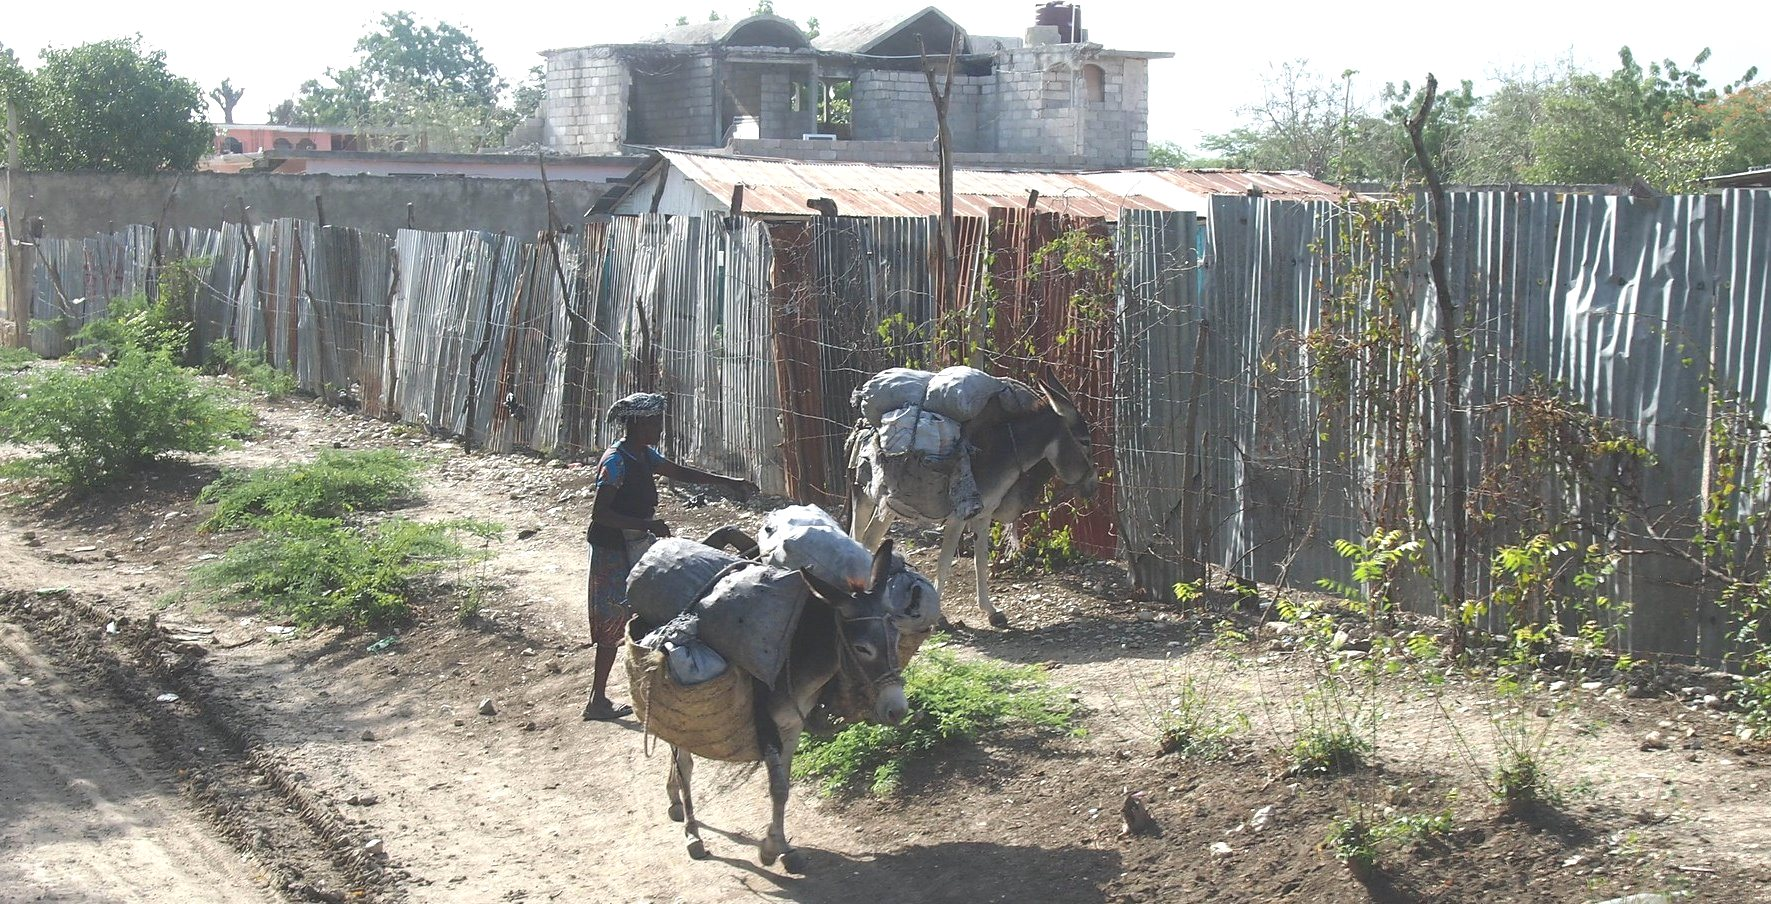 Transportation for Many Rural Haitians